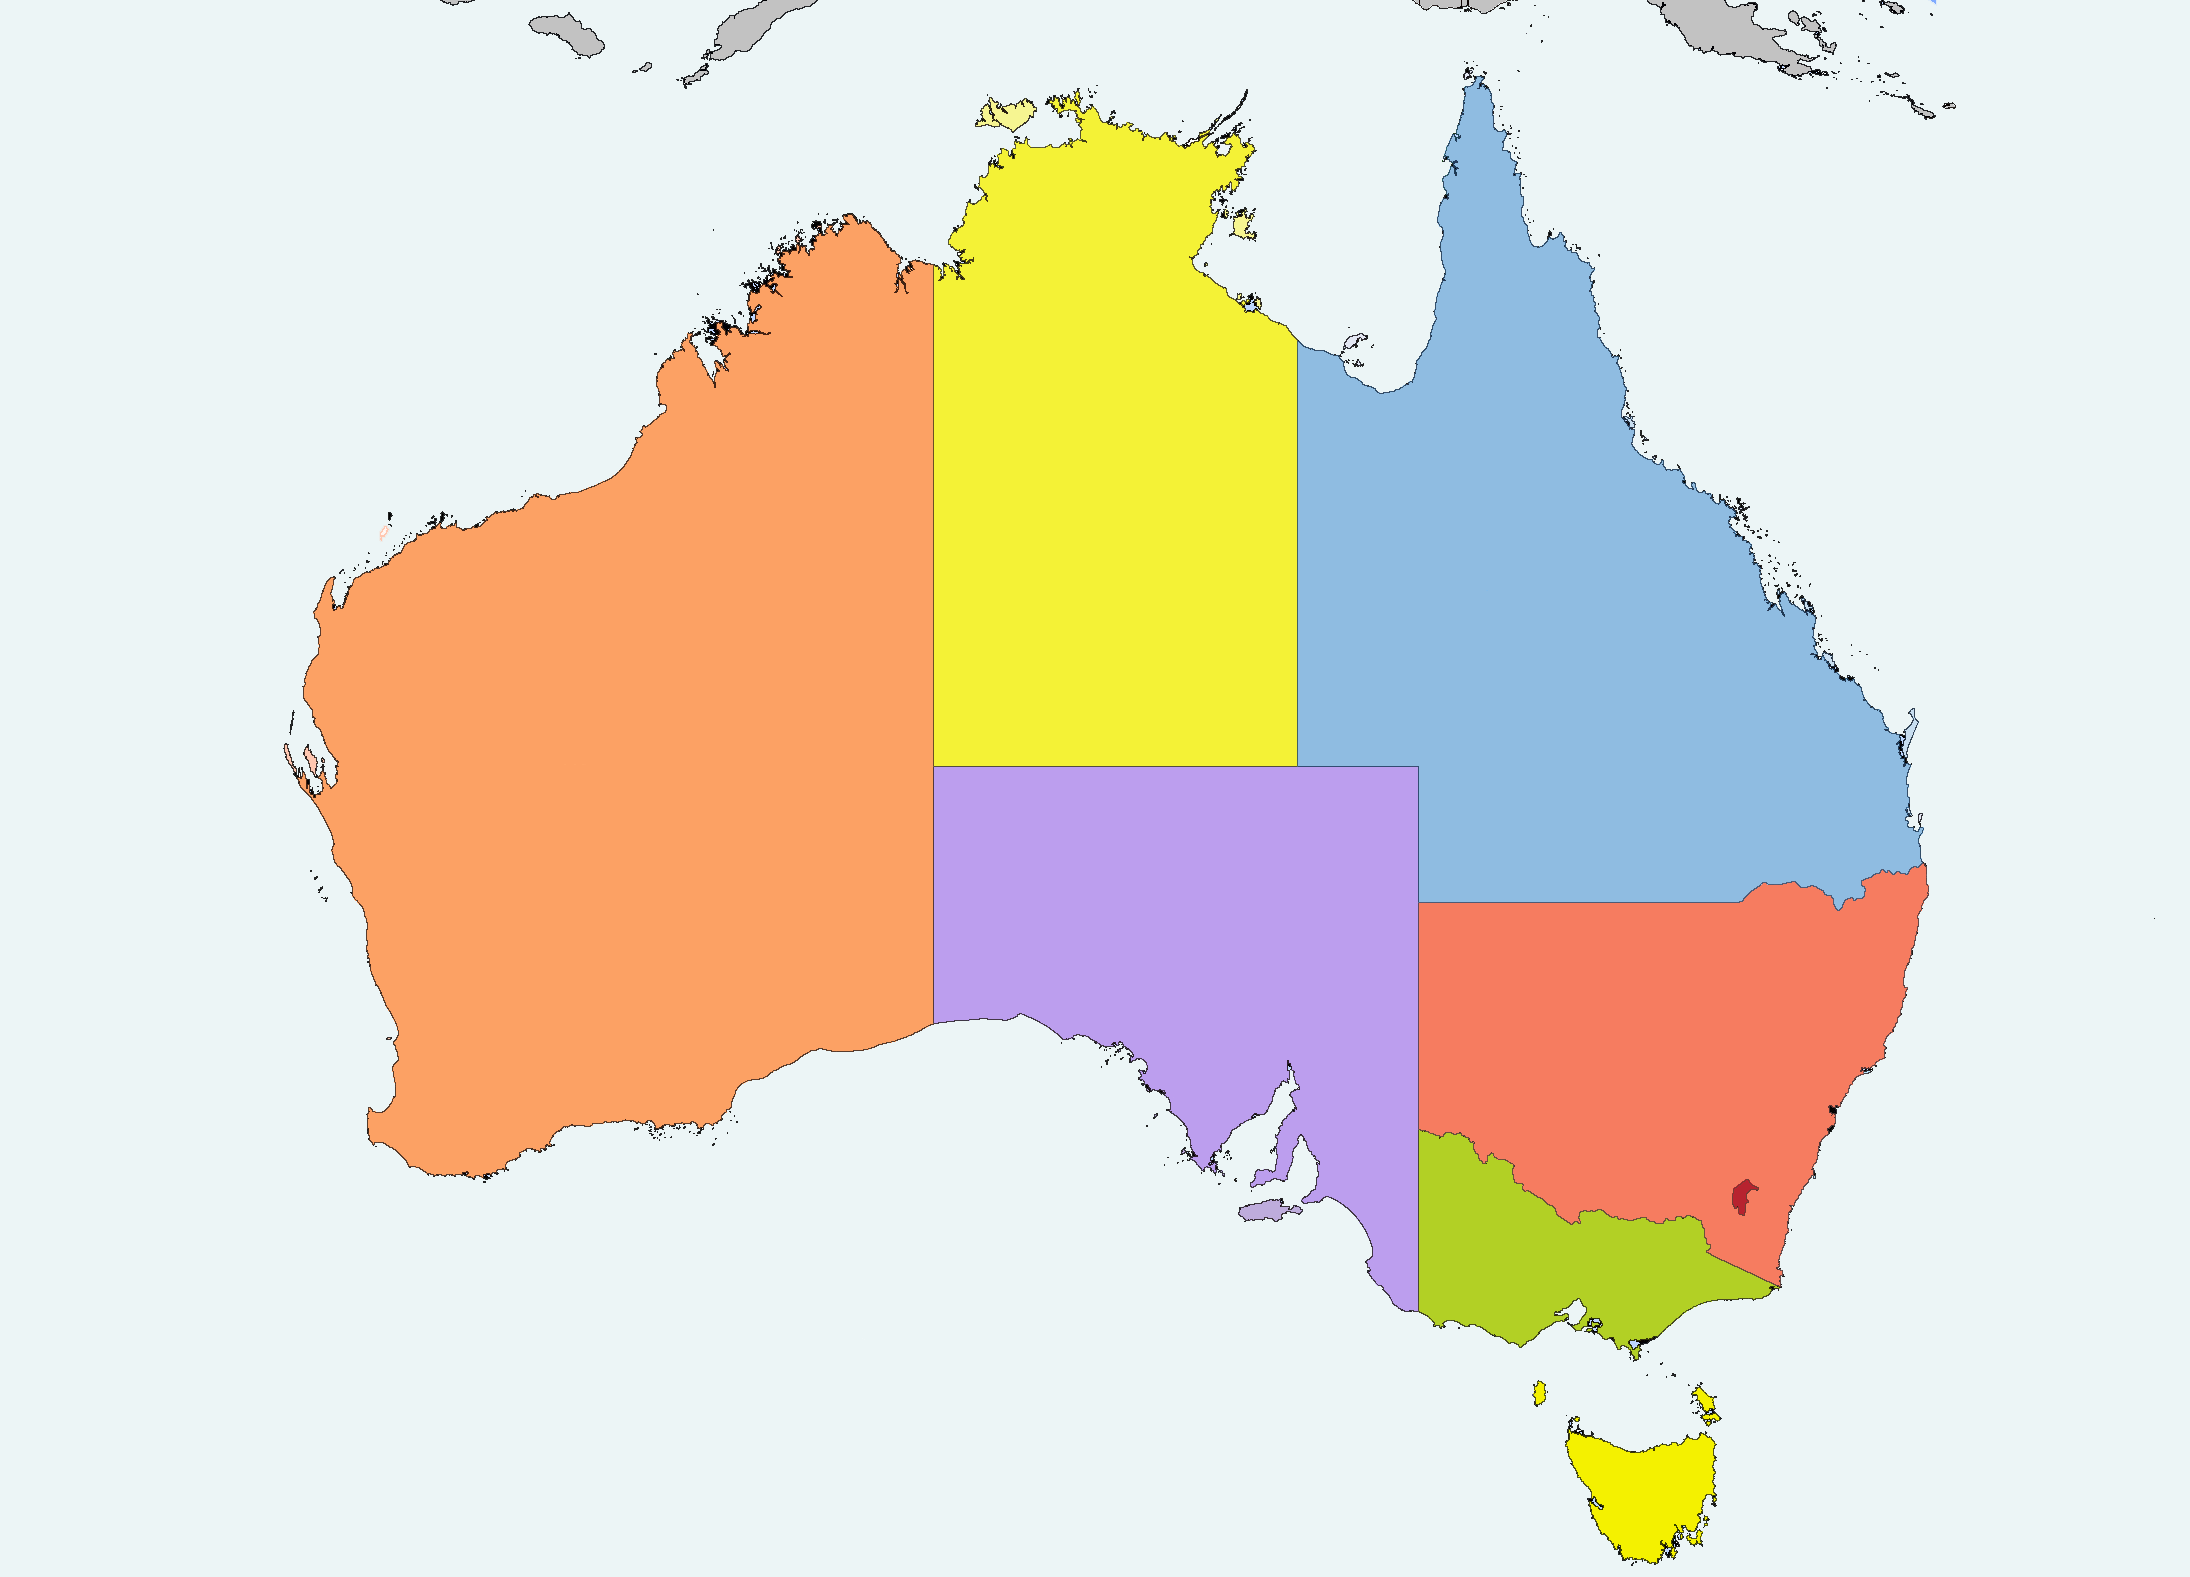 Australia Map And States.File Australia Location Map Recolored Png Wikimedia Commons